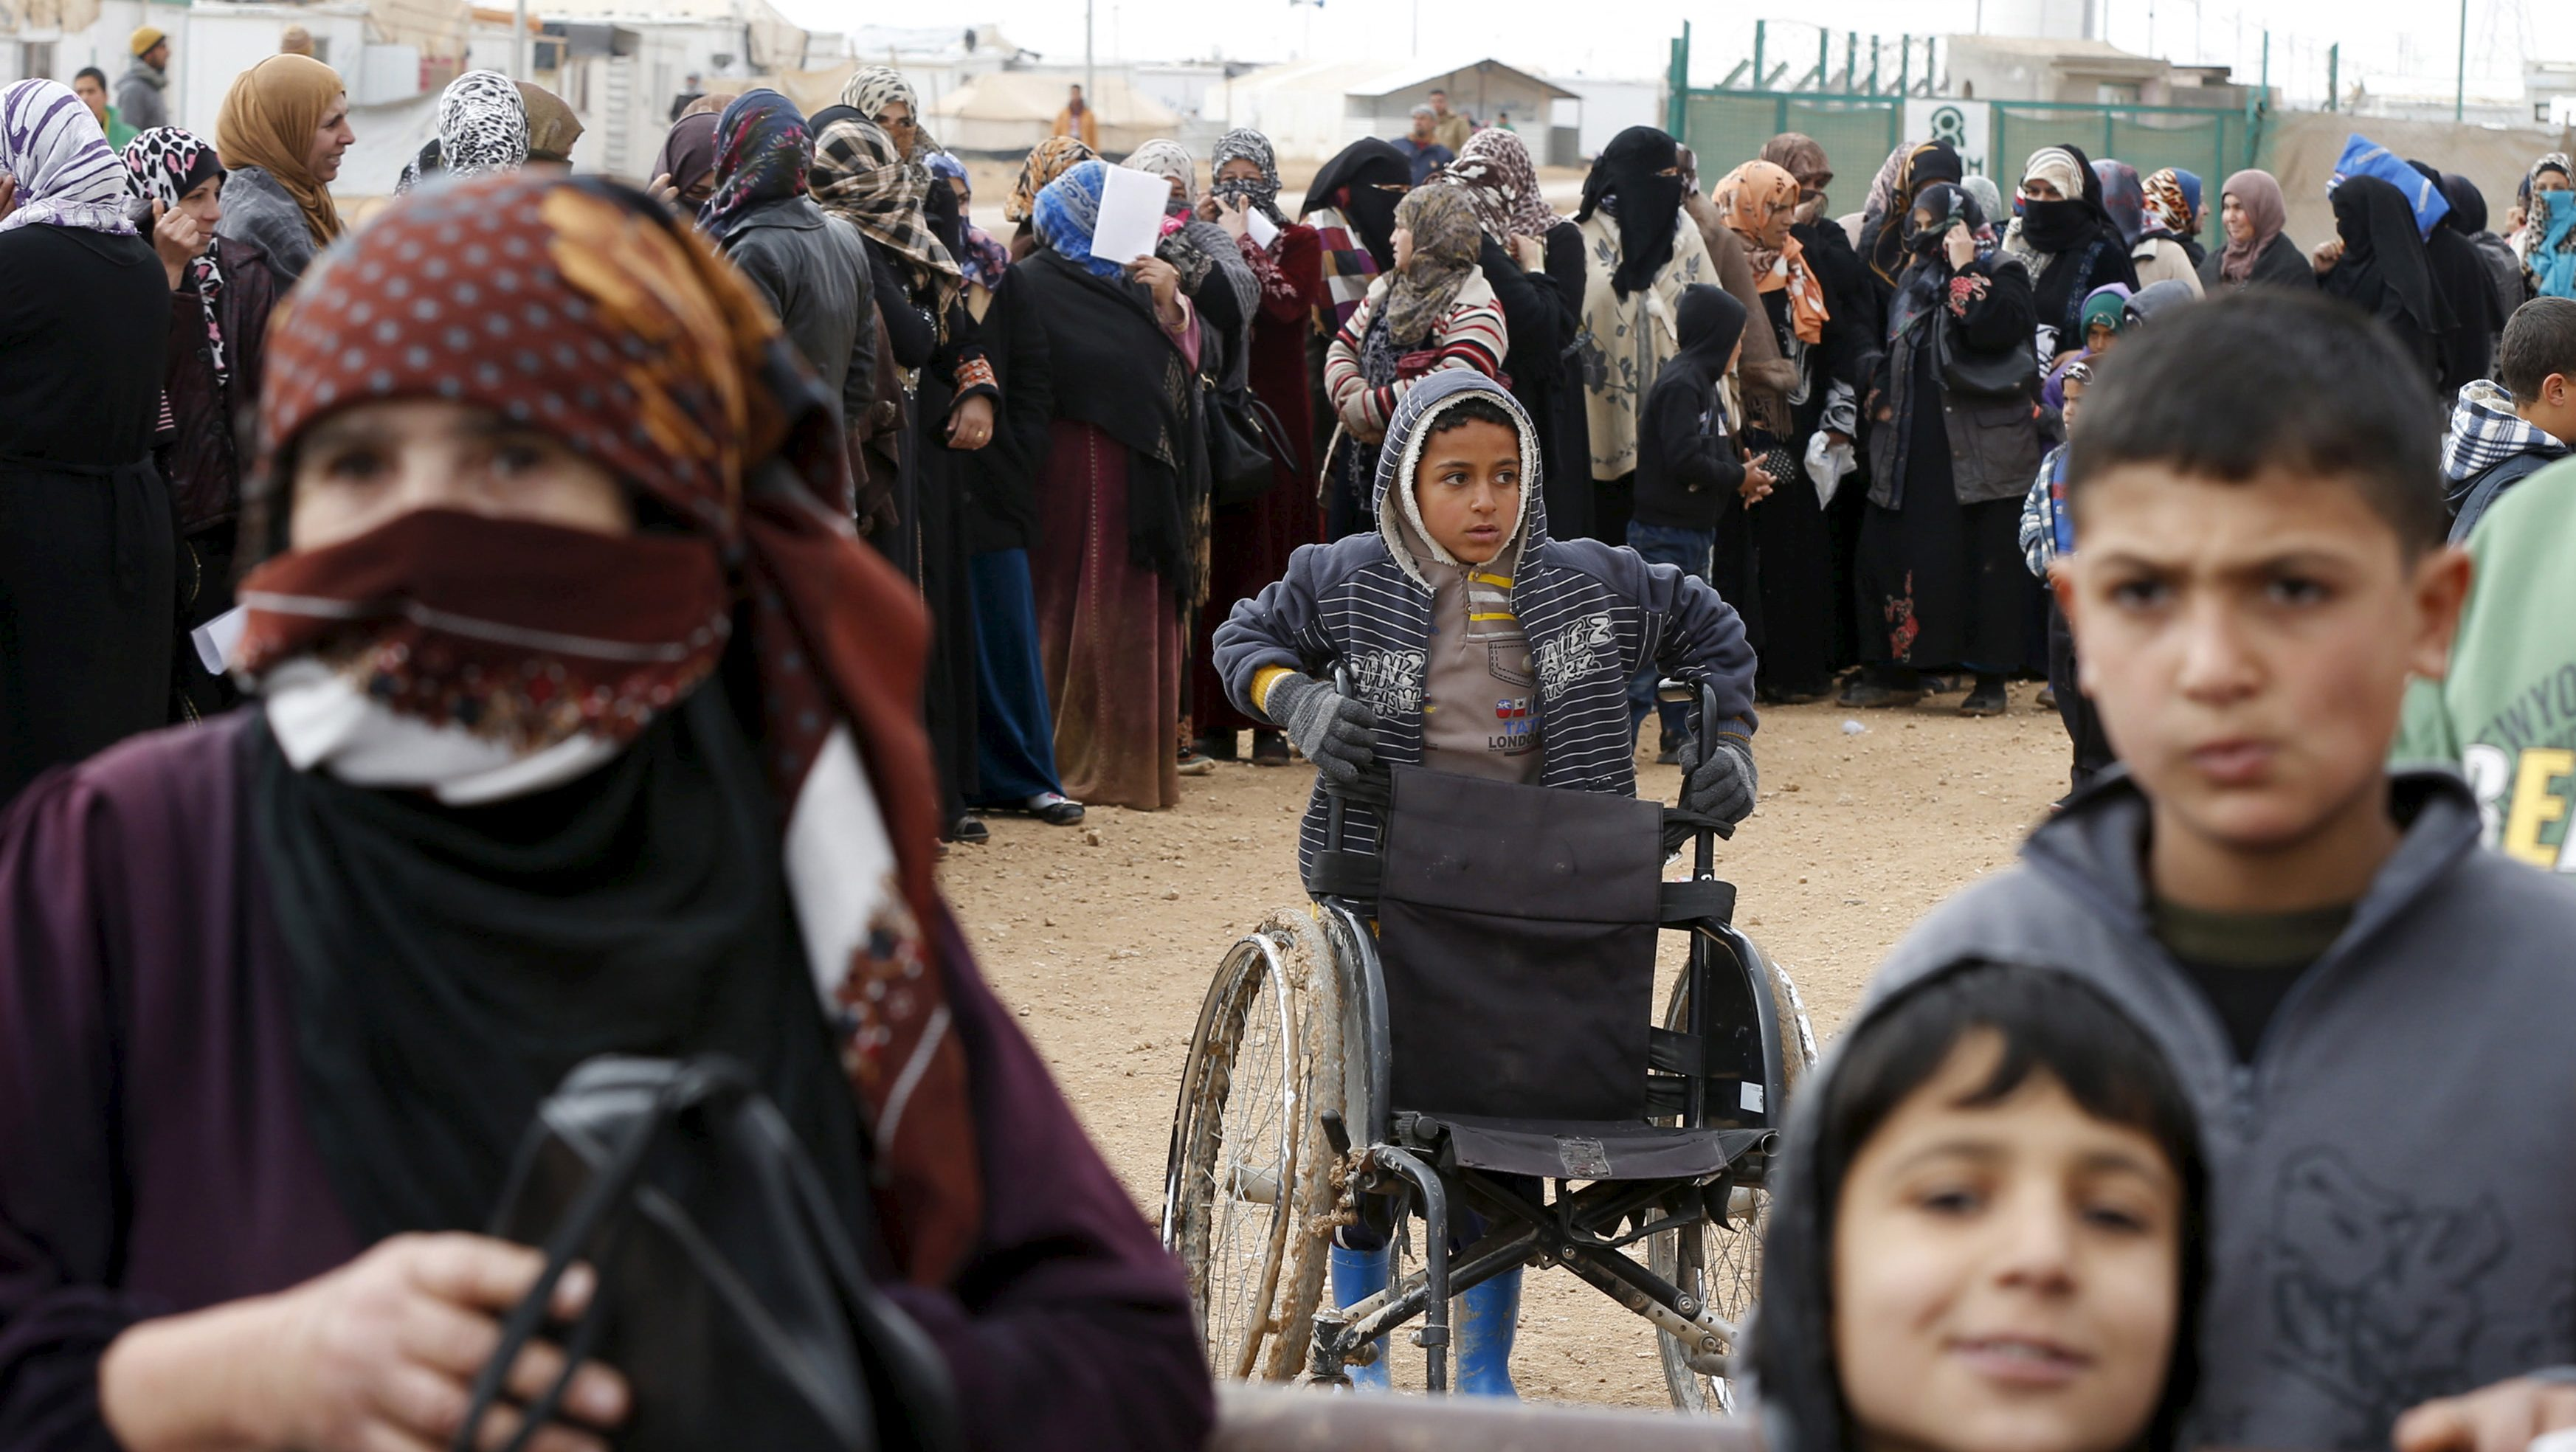 Syrian refugees stand in line at a refugee camp near the Jordanian border with Syria